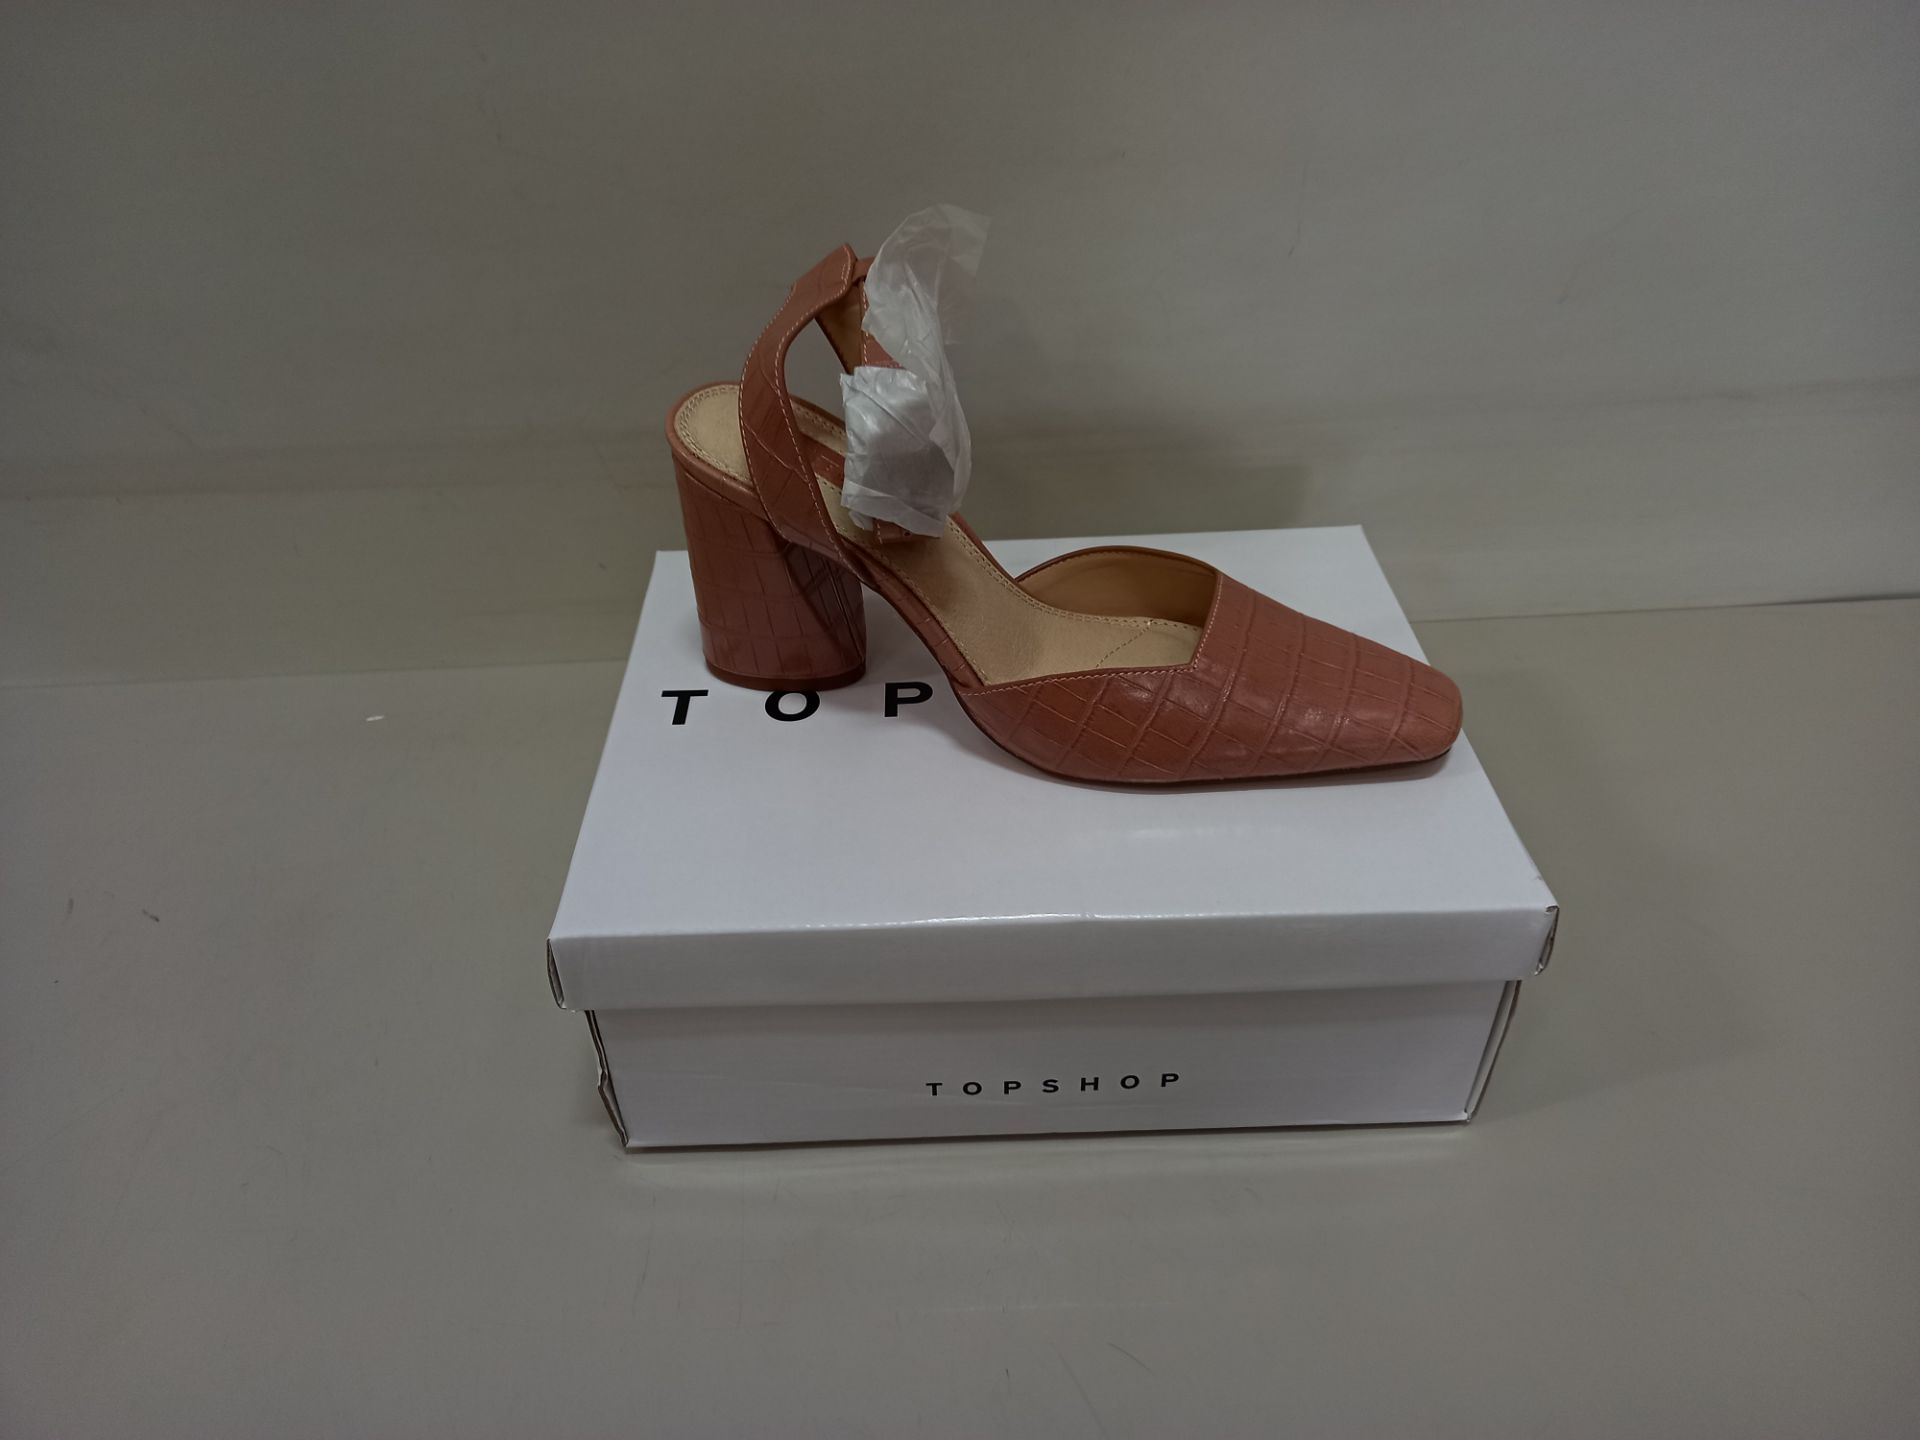 10 X BRAND NEW TOPSHOP GAZE PINK SHOES UK SIZE 6 AND 7 RRP £39.00 (TOTAL RRP £390.00)